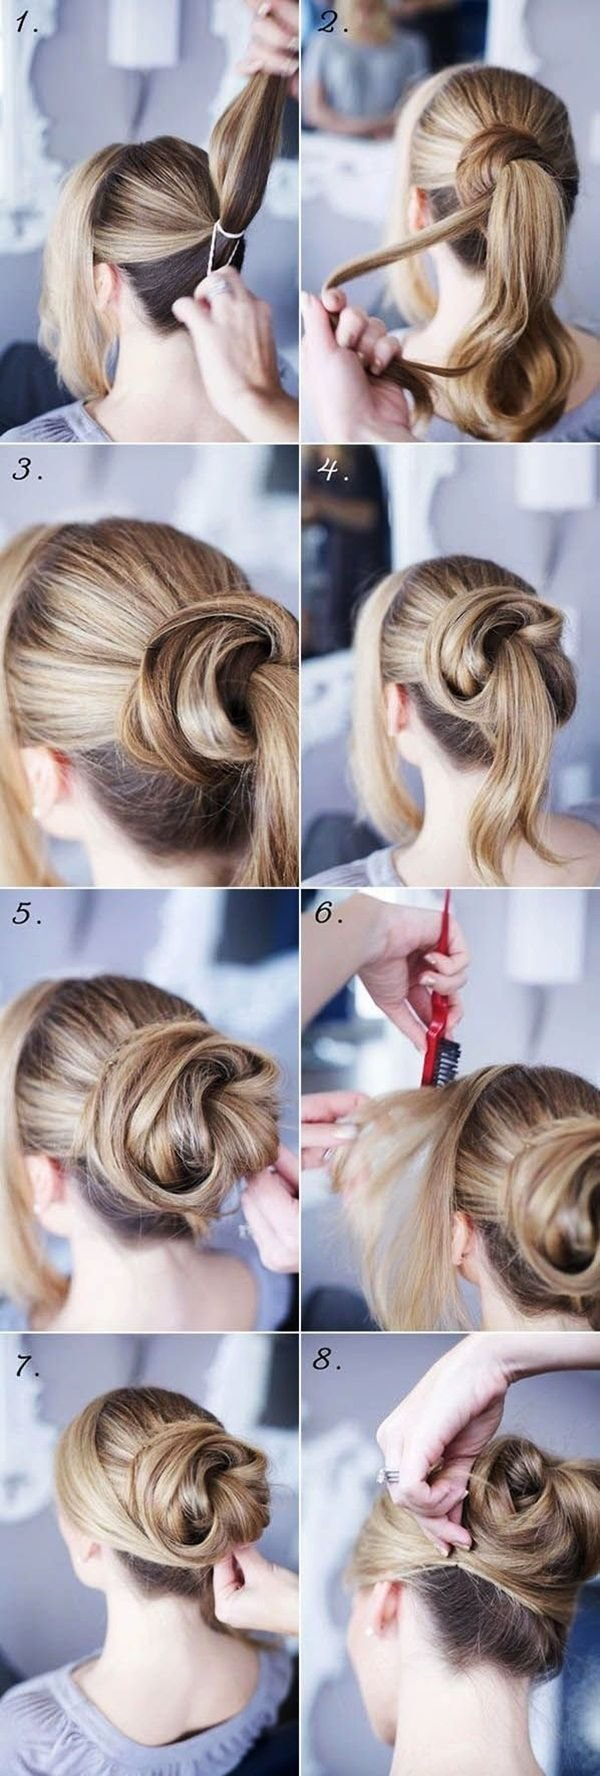 The Best 15 Easy Step By Step Hairstyles For Long Hair Hair Style Pictures